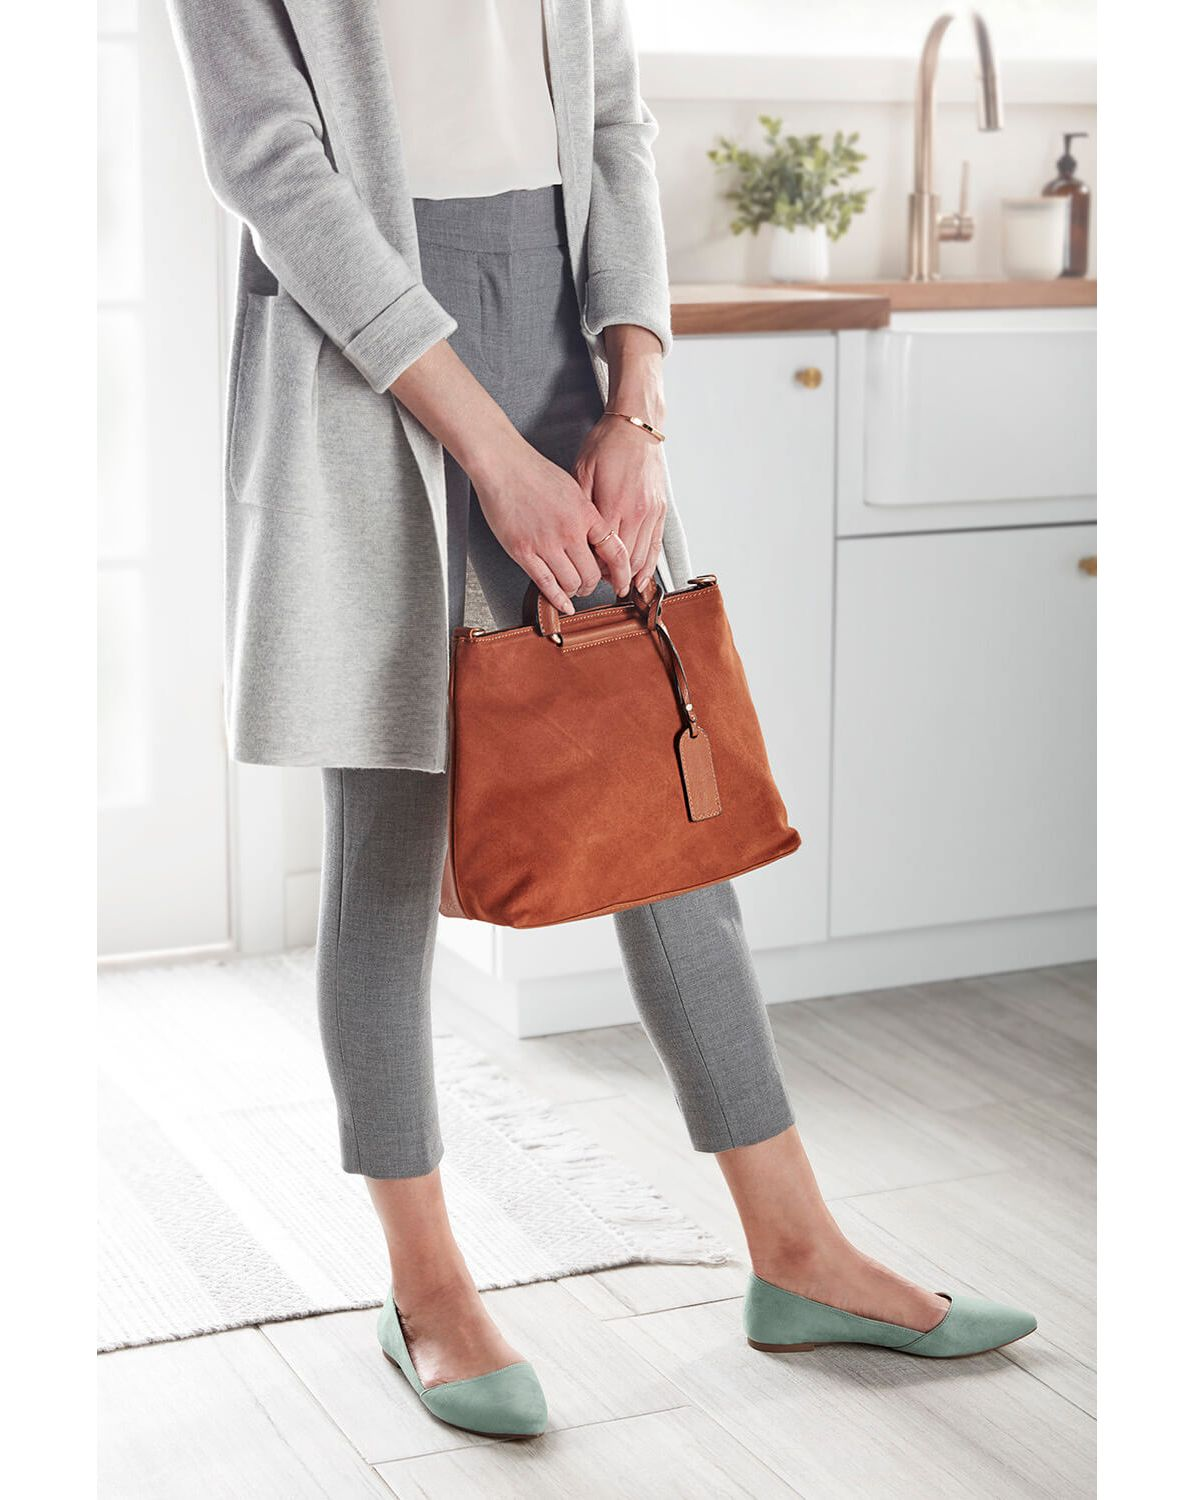 A woman dressed in gray pants, holding an orange purse in her hands, standing in her kitchen